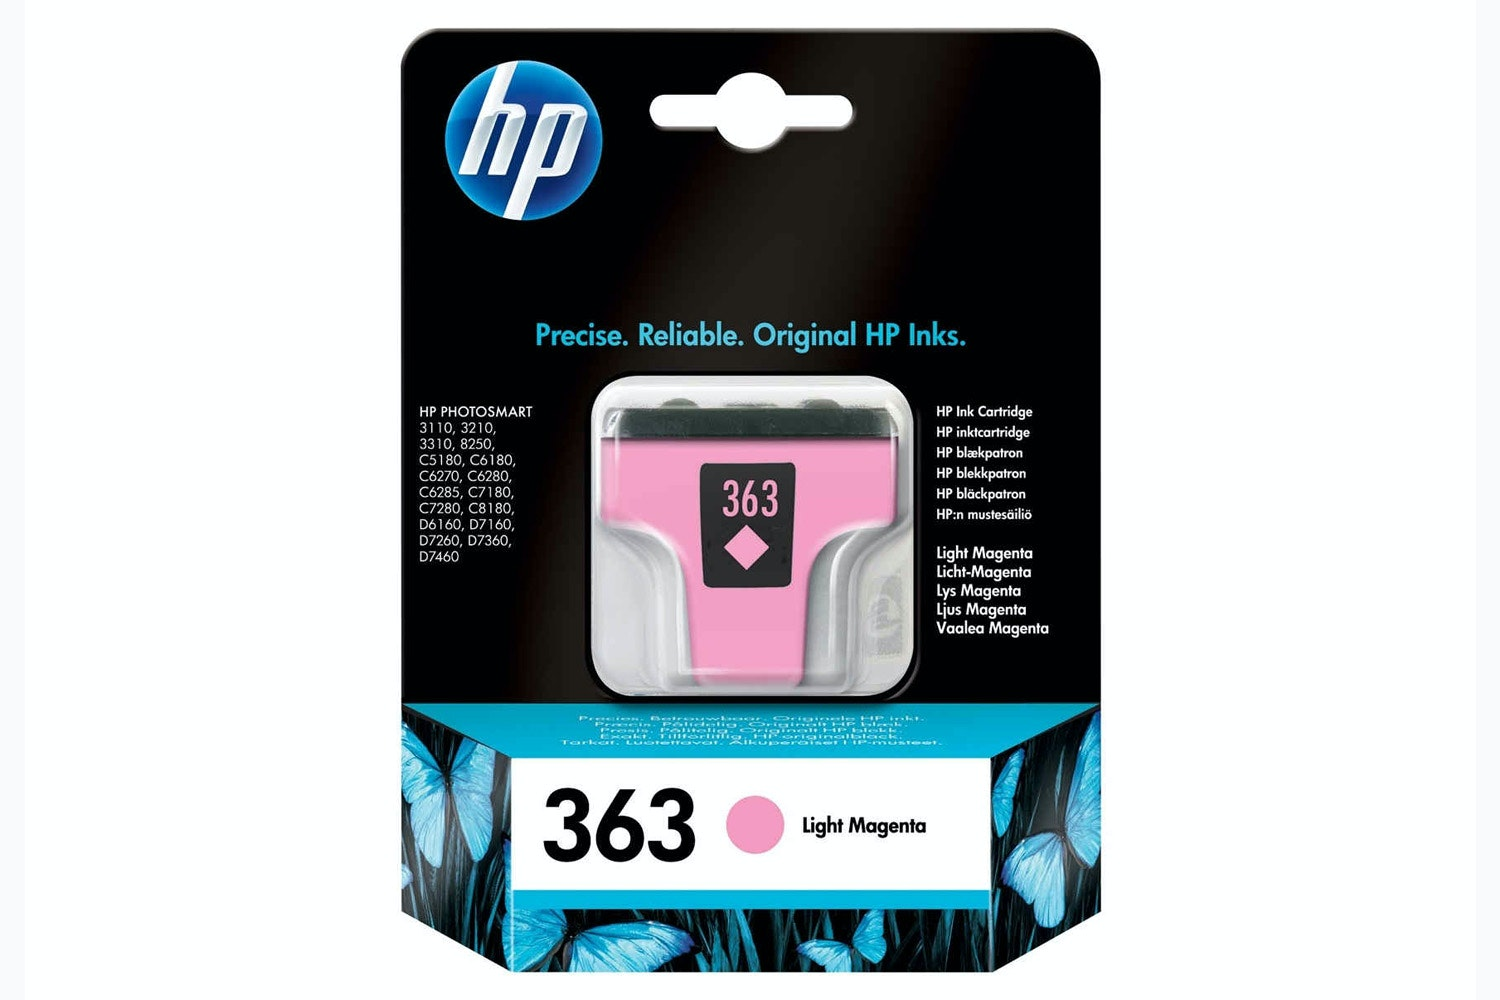 HP 363 Original Ink Cartridge | Light Magenta